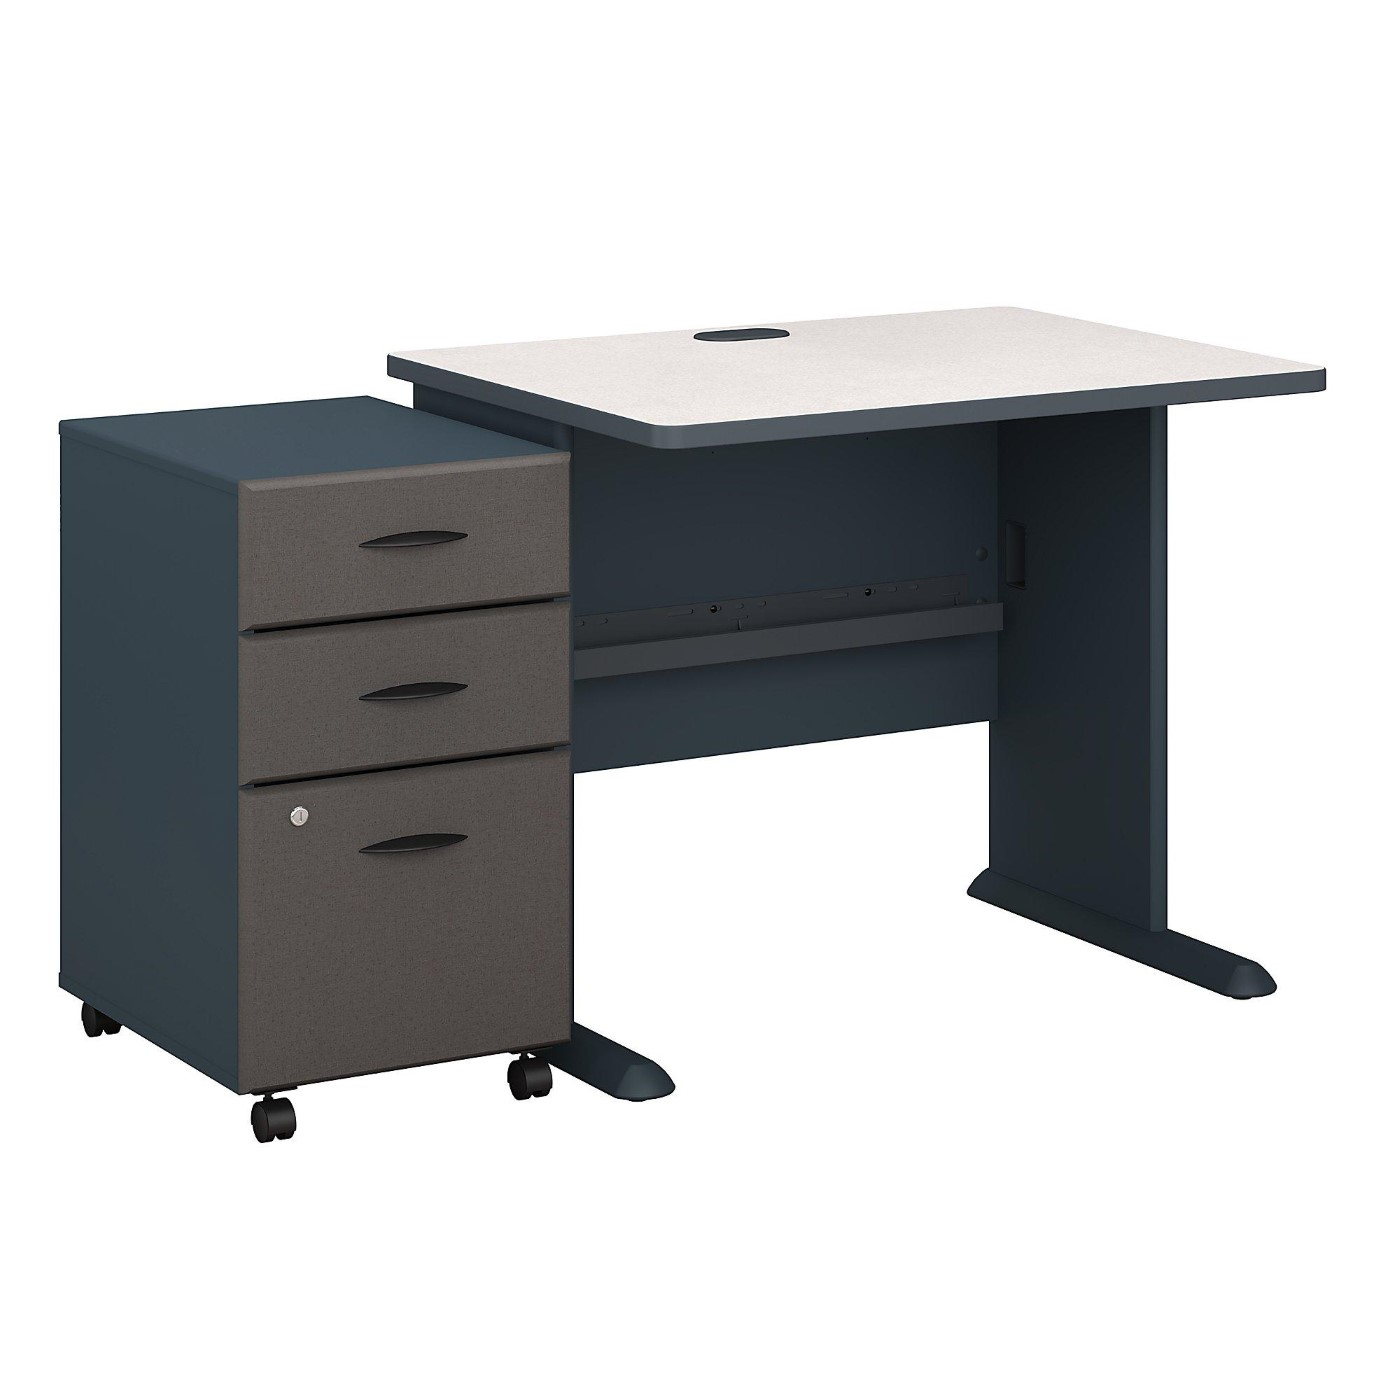 <font color=#c60><b>BUSH BUSINESS FURNITURE SERIES A 36W DESK WITH MOBILE FILE CABINET. FREE SHIPPING</font></b></font>